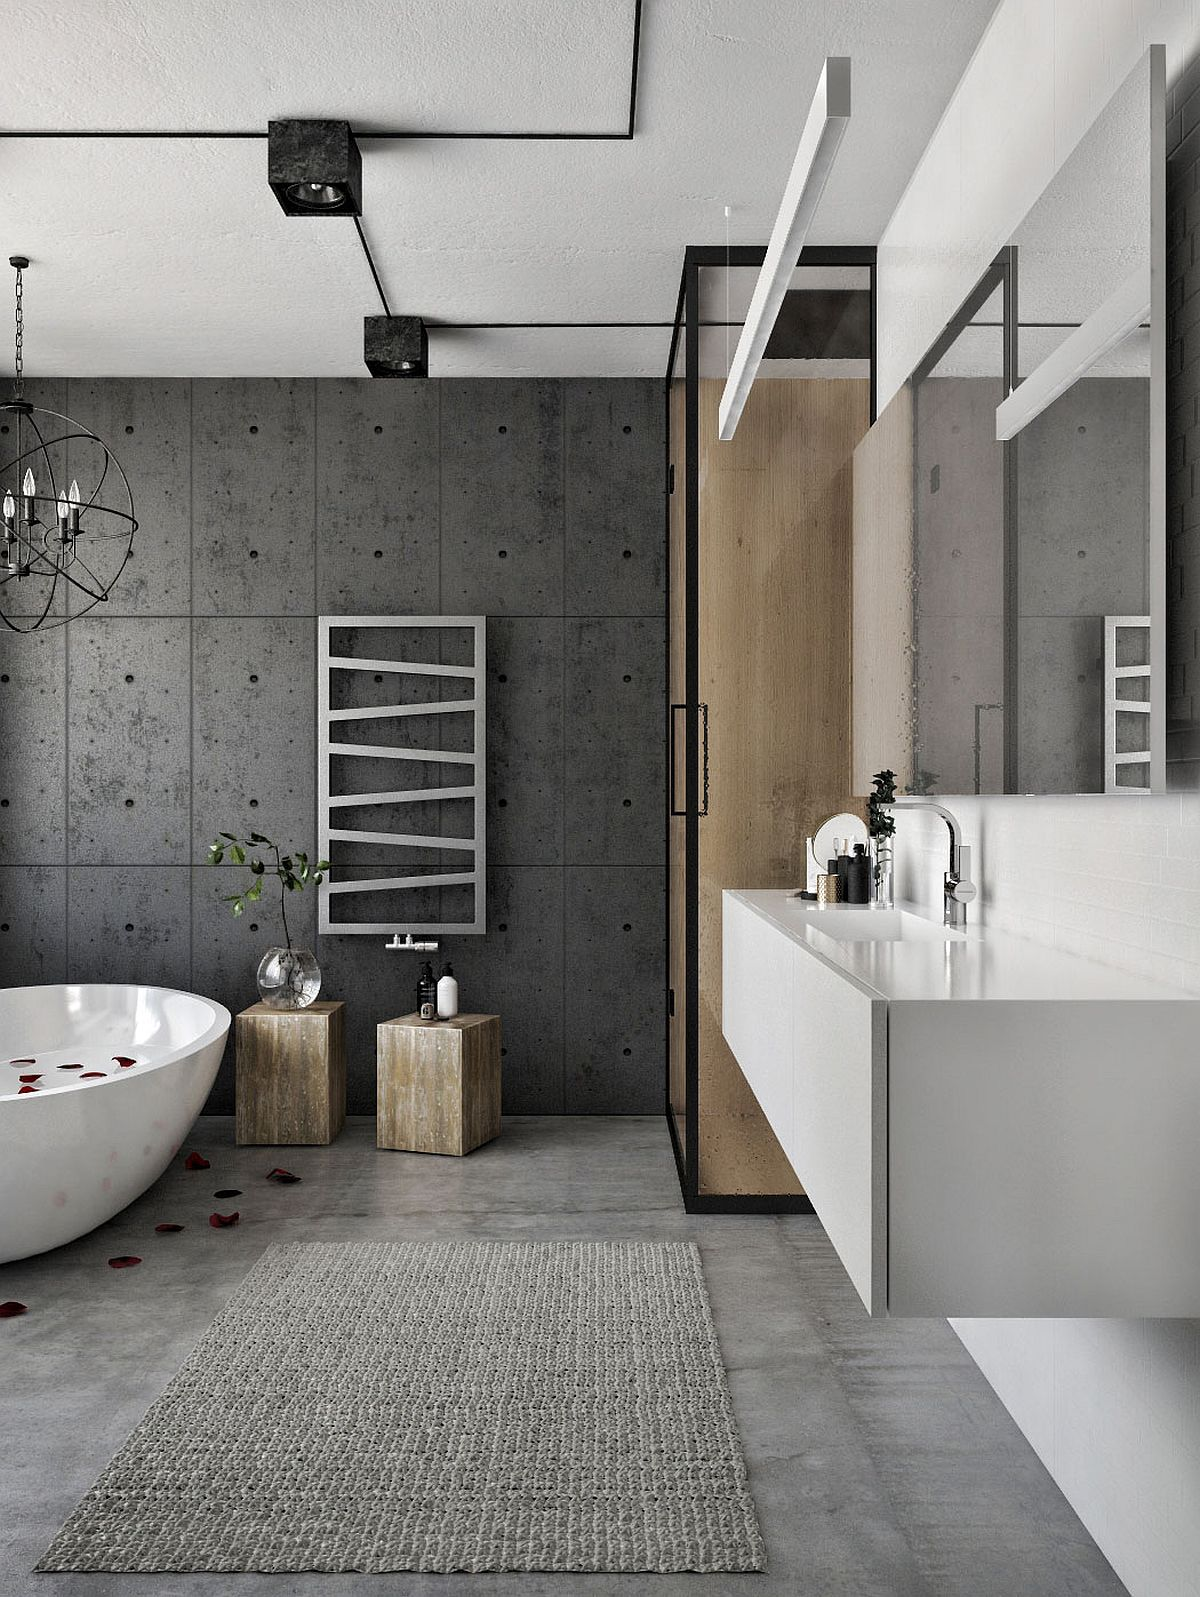 Exposed Concrete Walls Ideas Inspiration: Modern Loft In Kaunas: Industrial Style Wrapped In